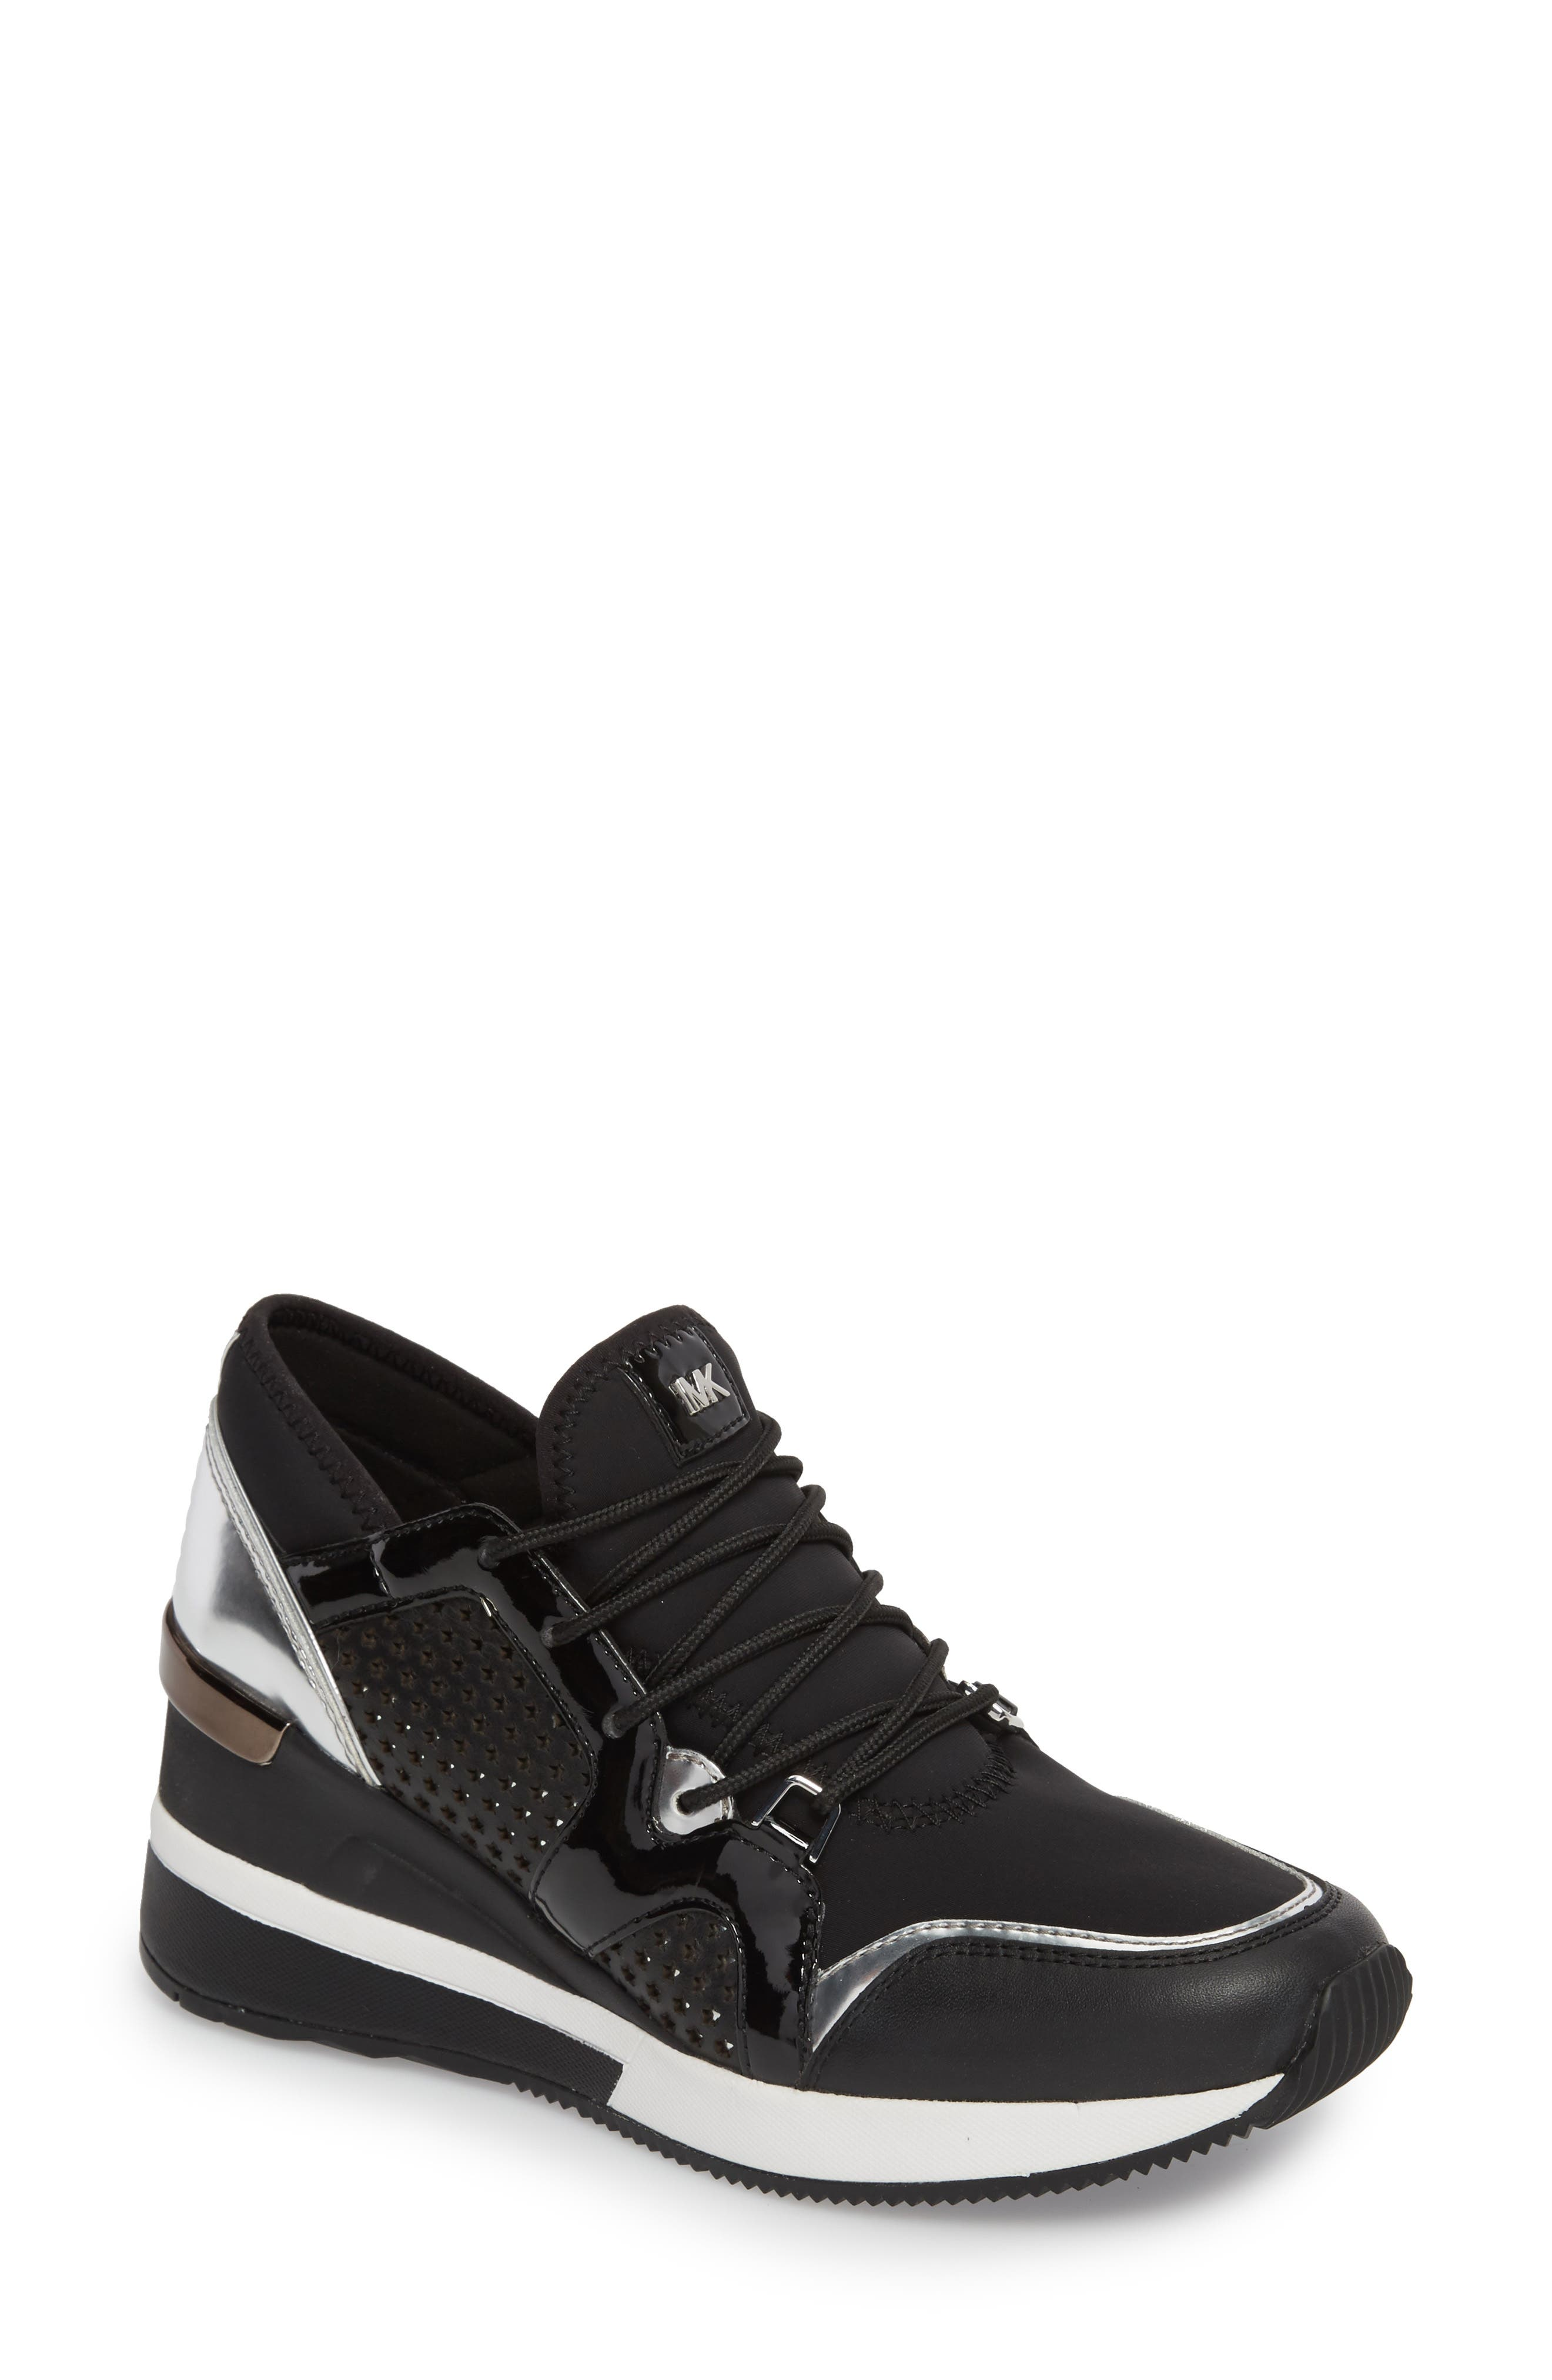 Scout Wedge Sneaker,                             Main thumbnail 1, color,